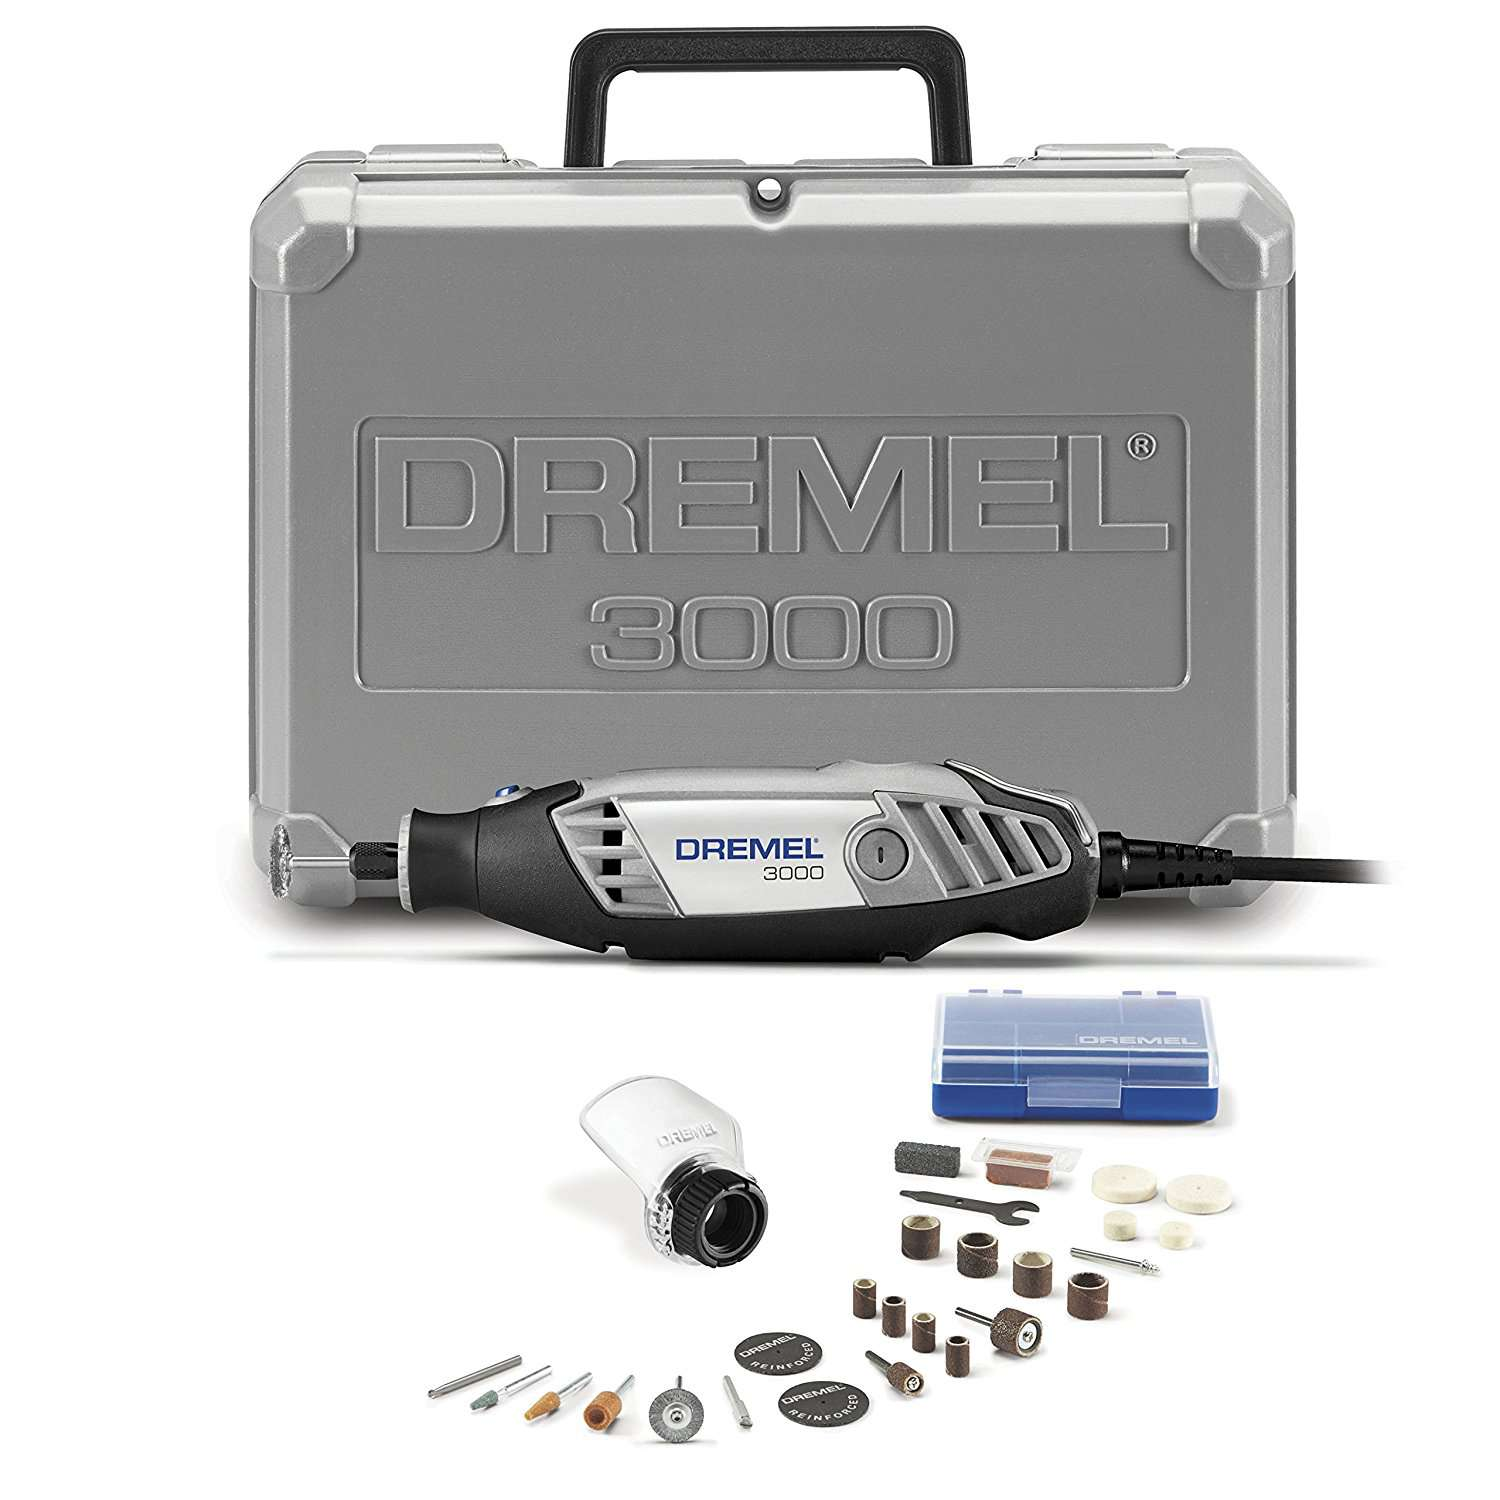 Dremel 3000 Variable Speed Rotary Tool with Flex Shaft